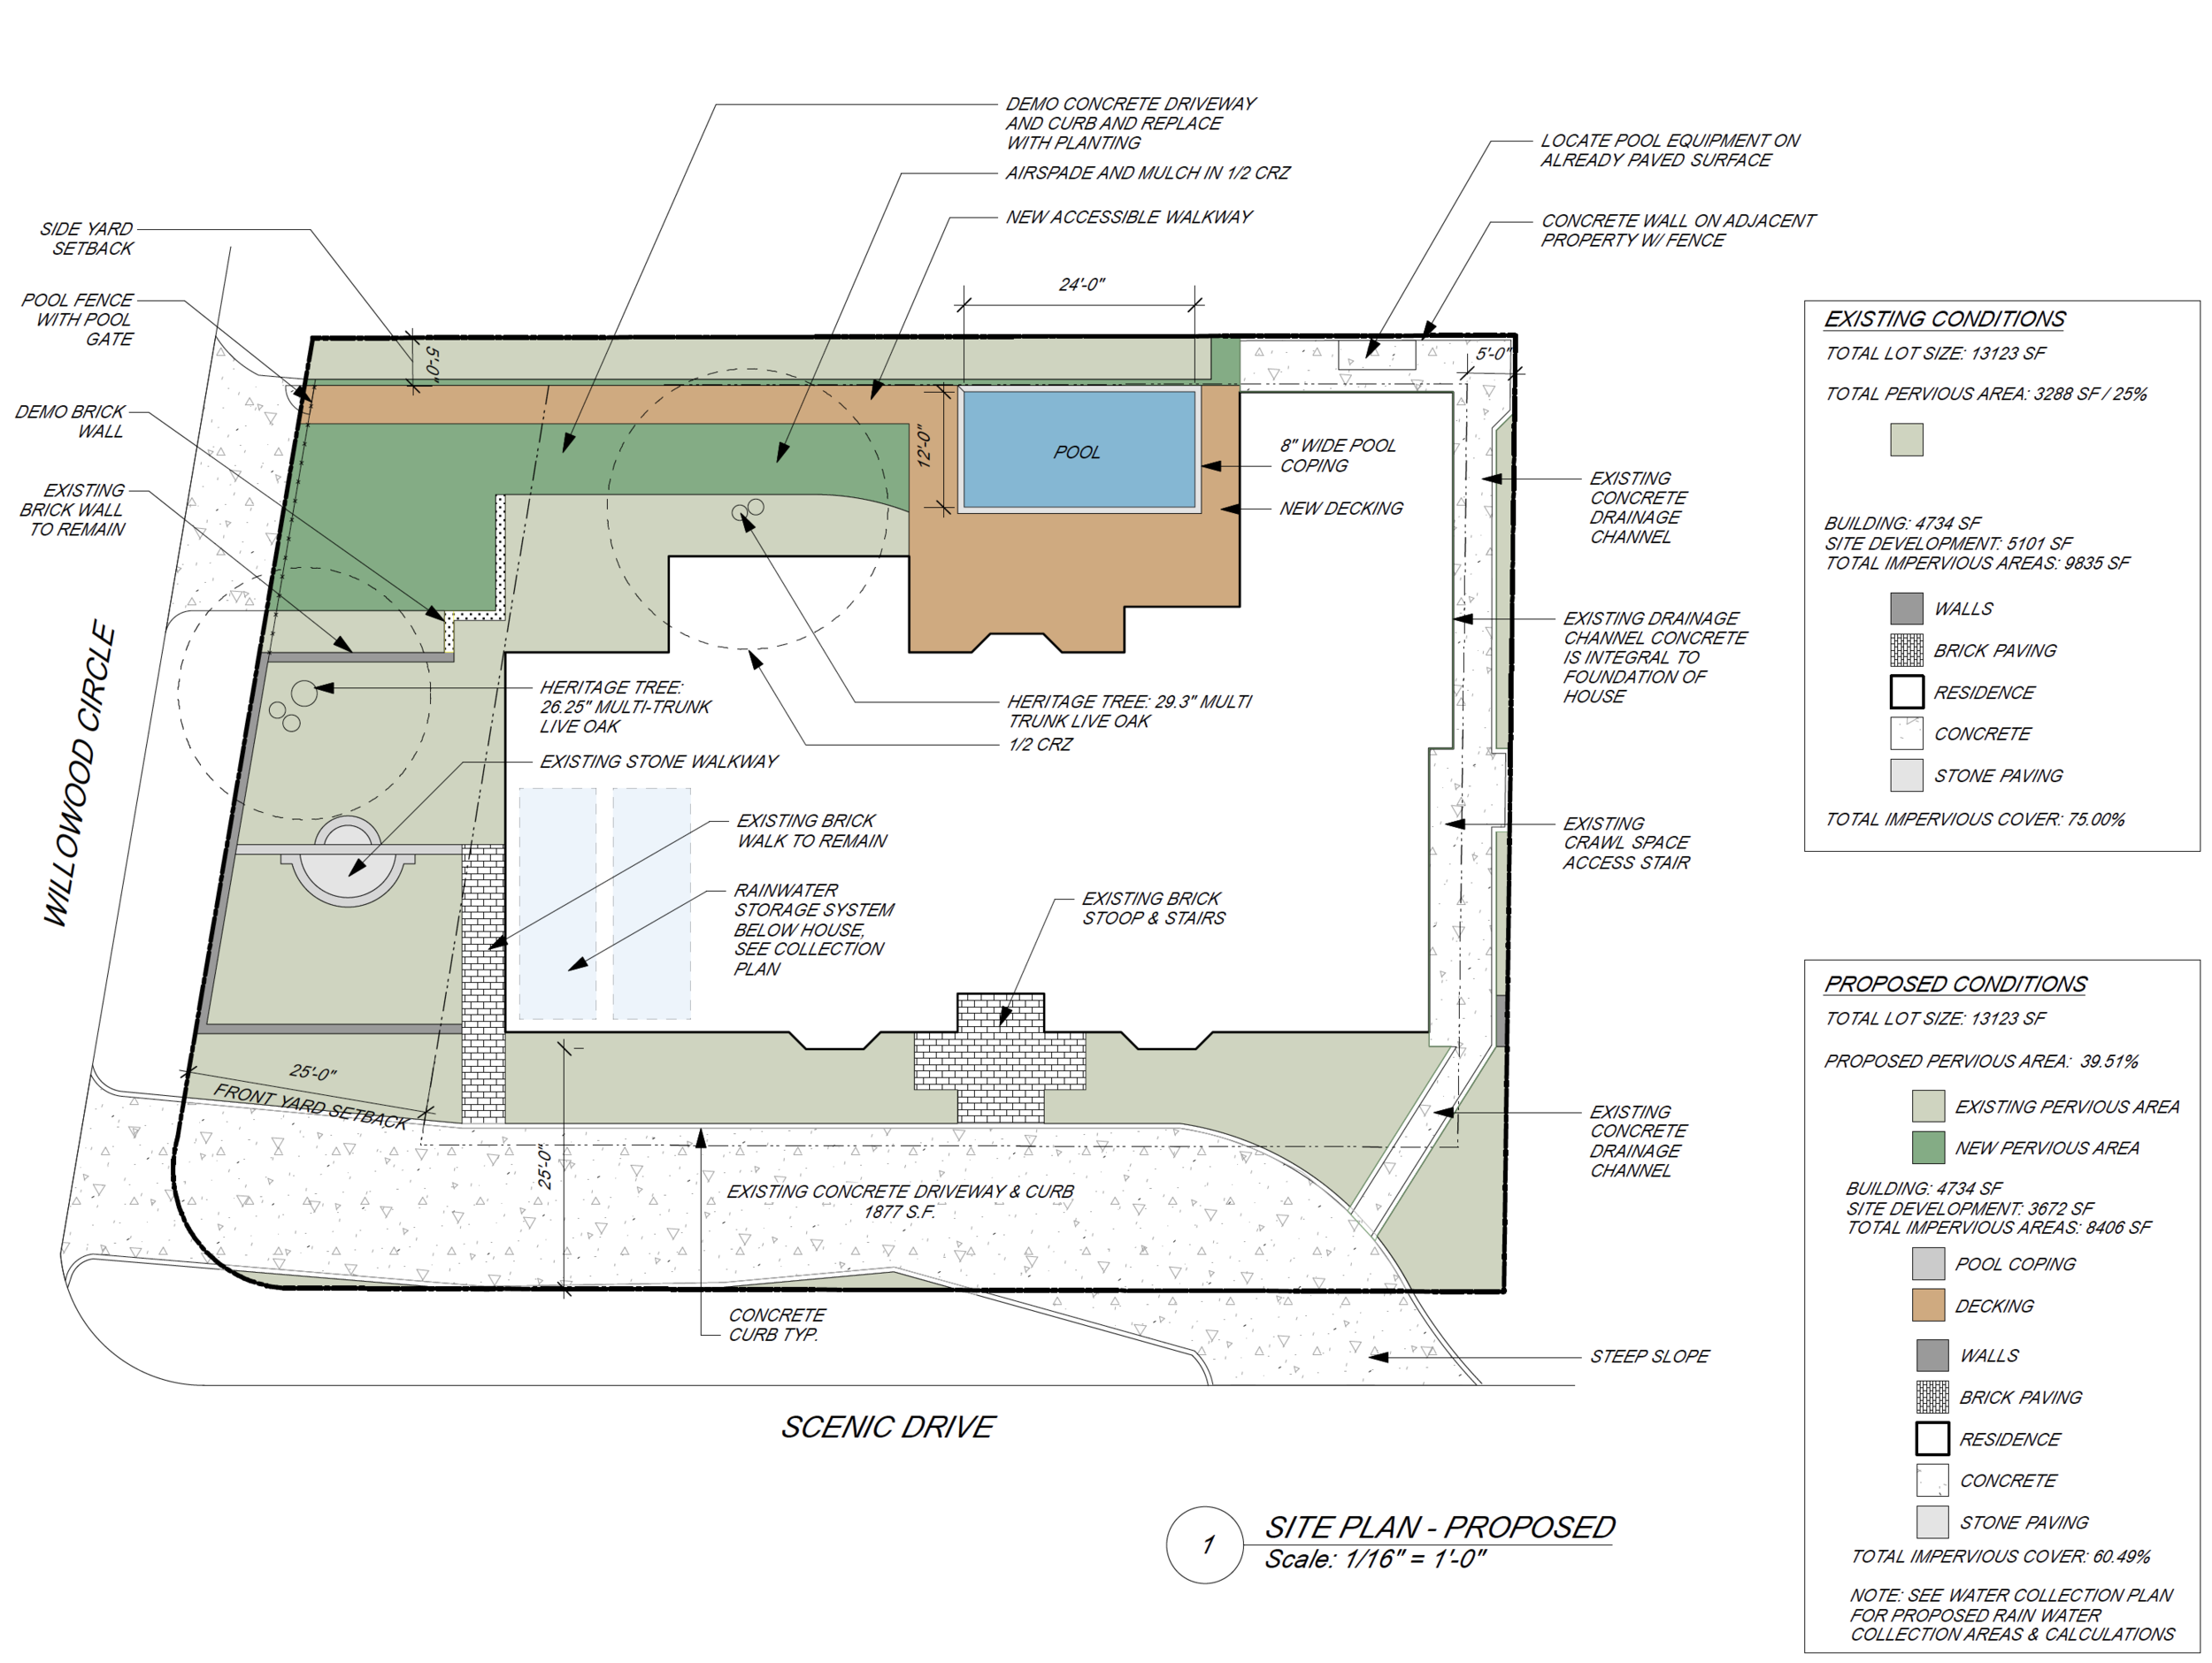 A site plan showing the proposed solution.